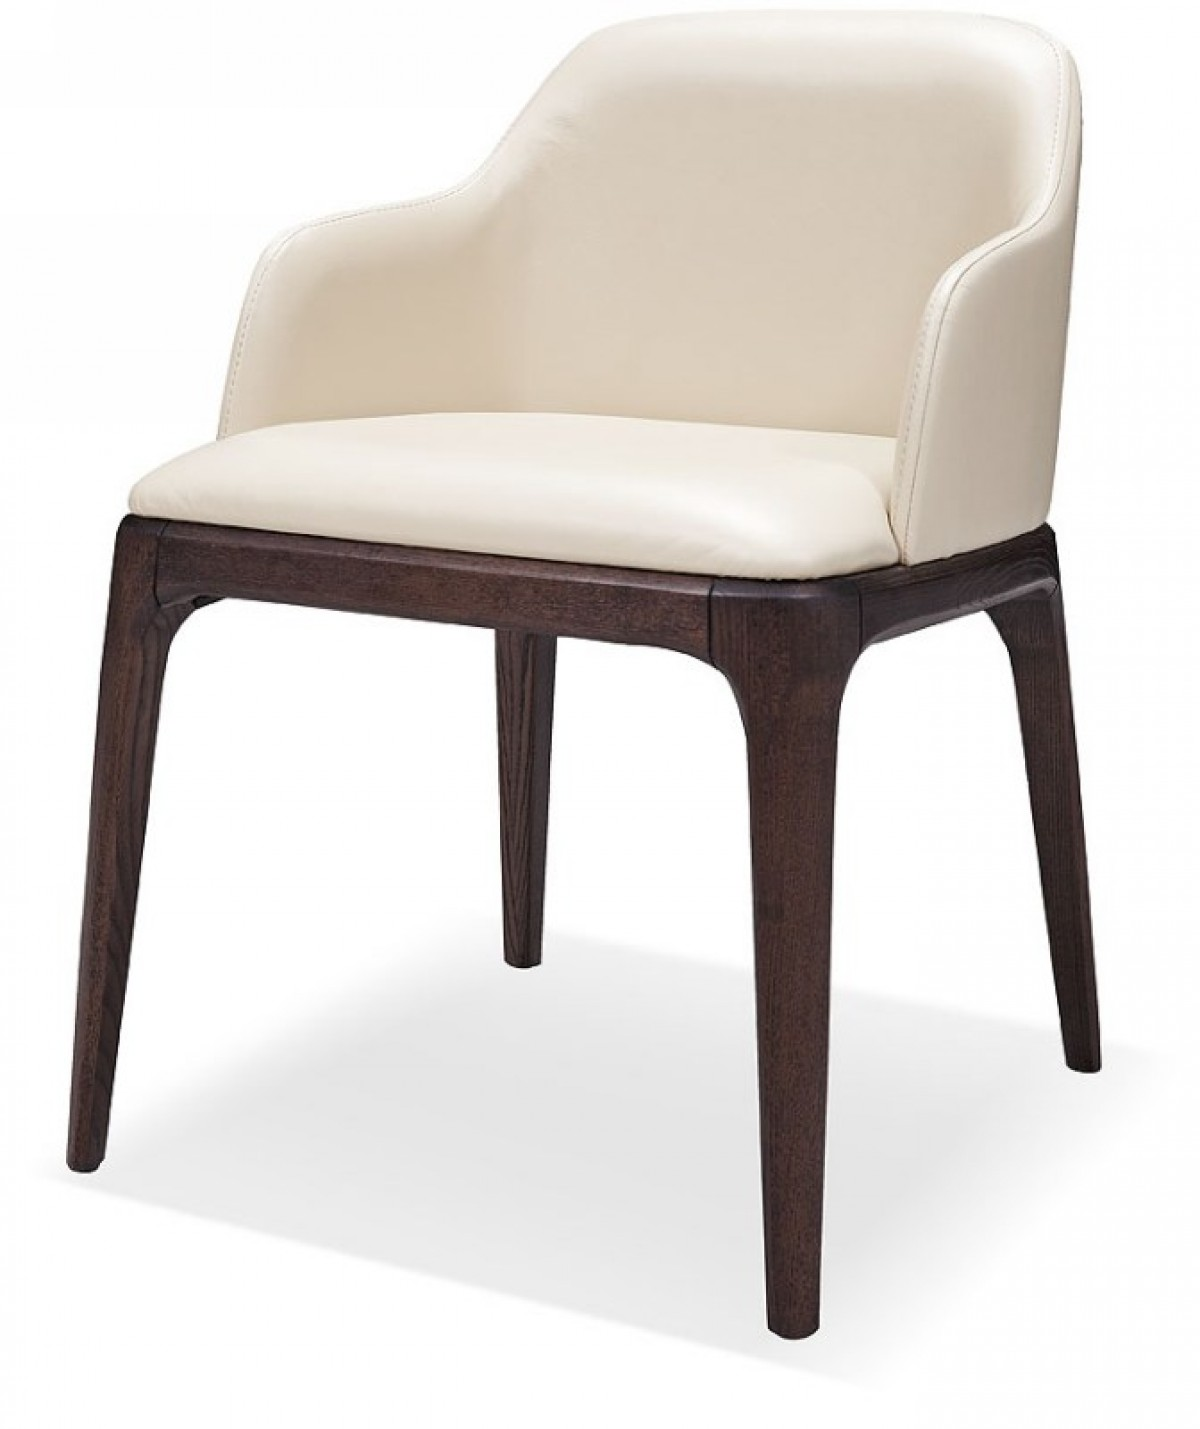 Modrest Margot Modern Cream Eco Leather Dining Chair